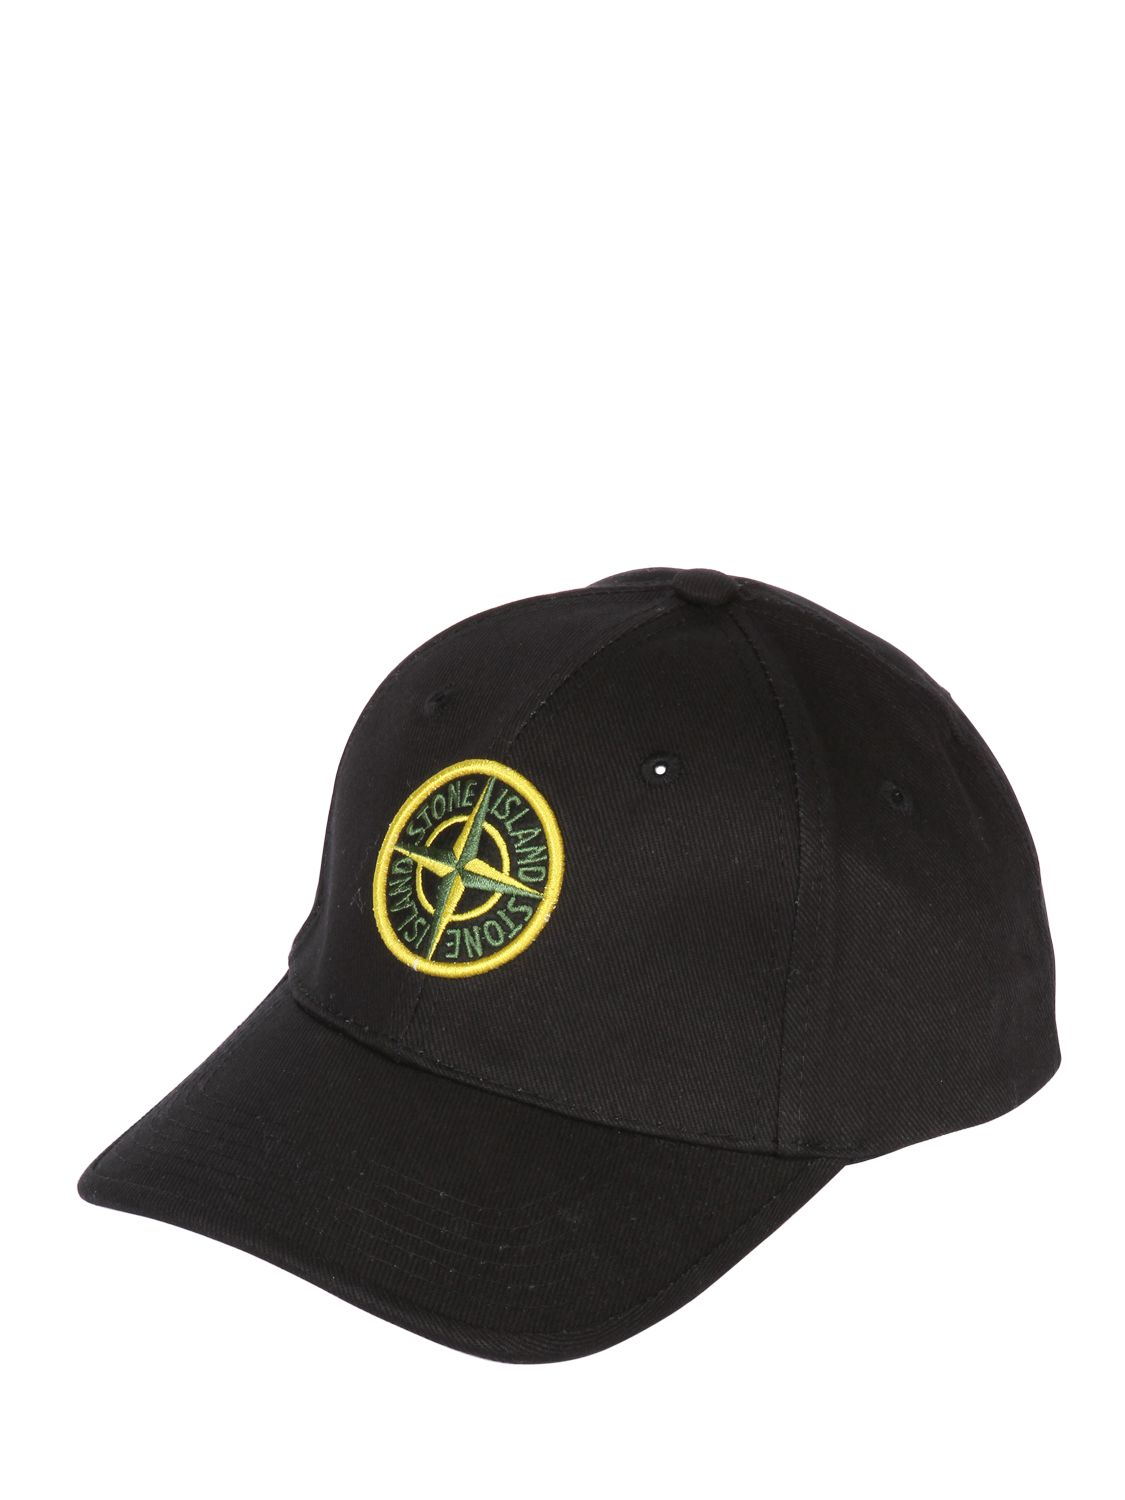 Lyst - Stone Island Cotton Canvas Baseball Hat in Black for Men a47e078e05d